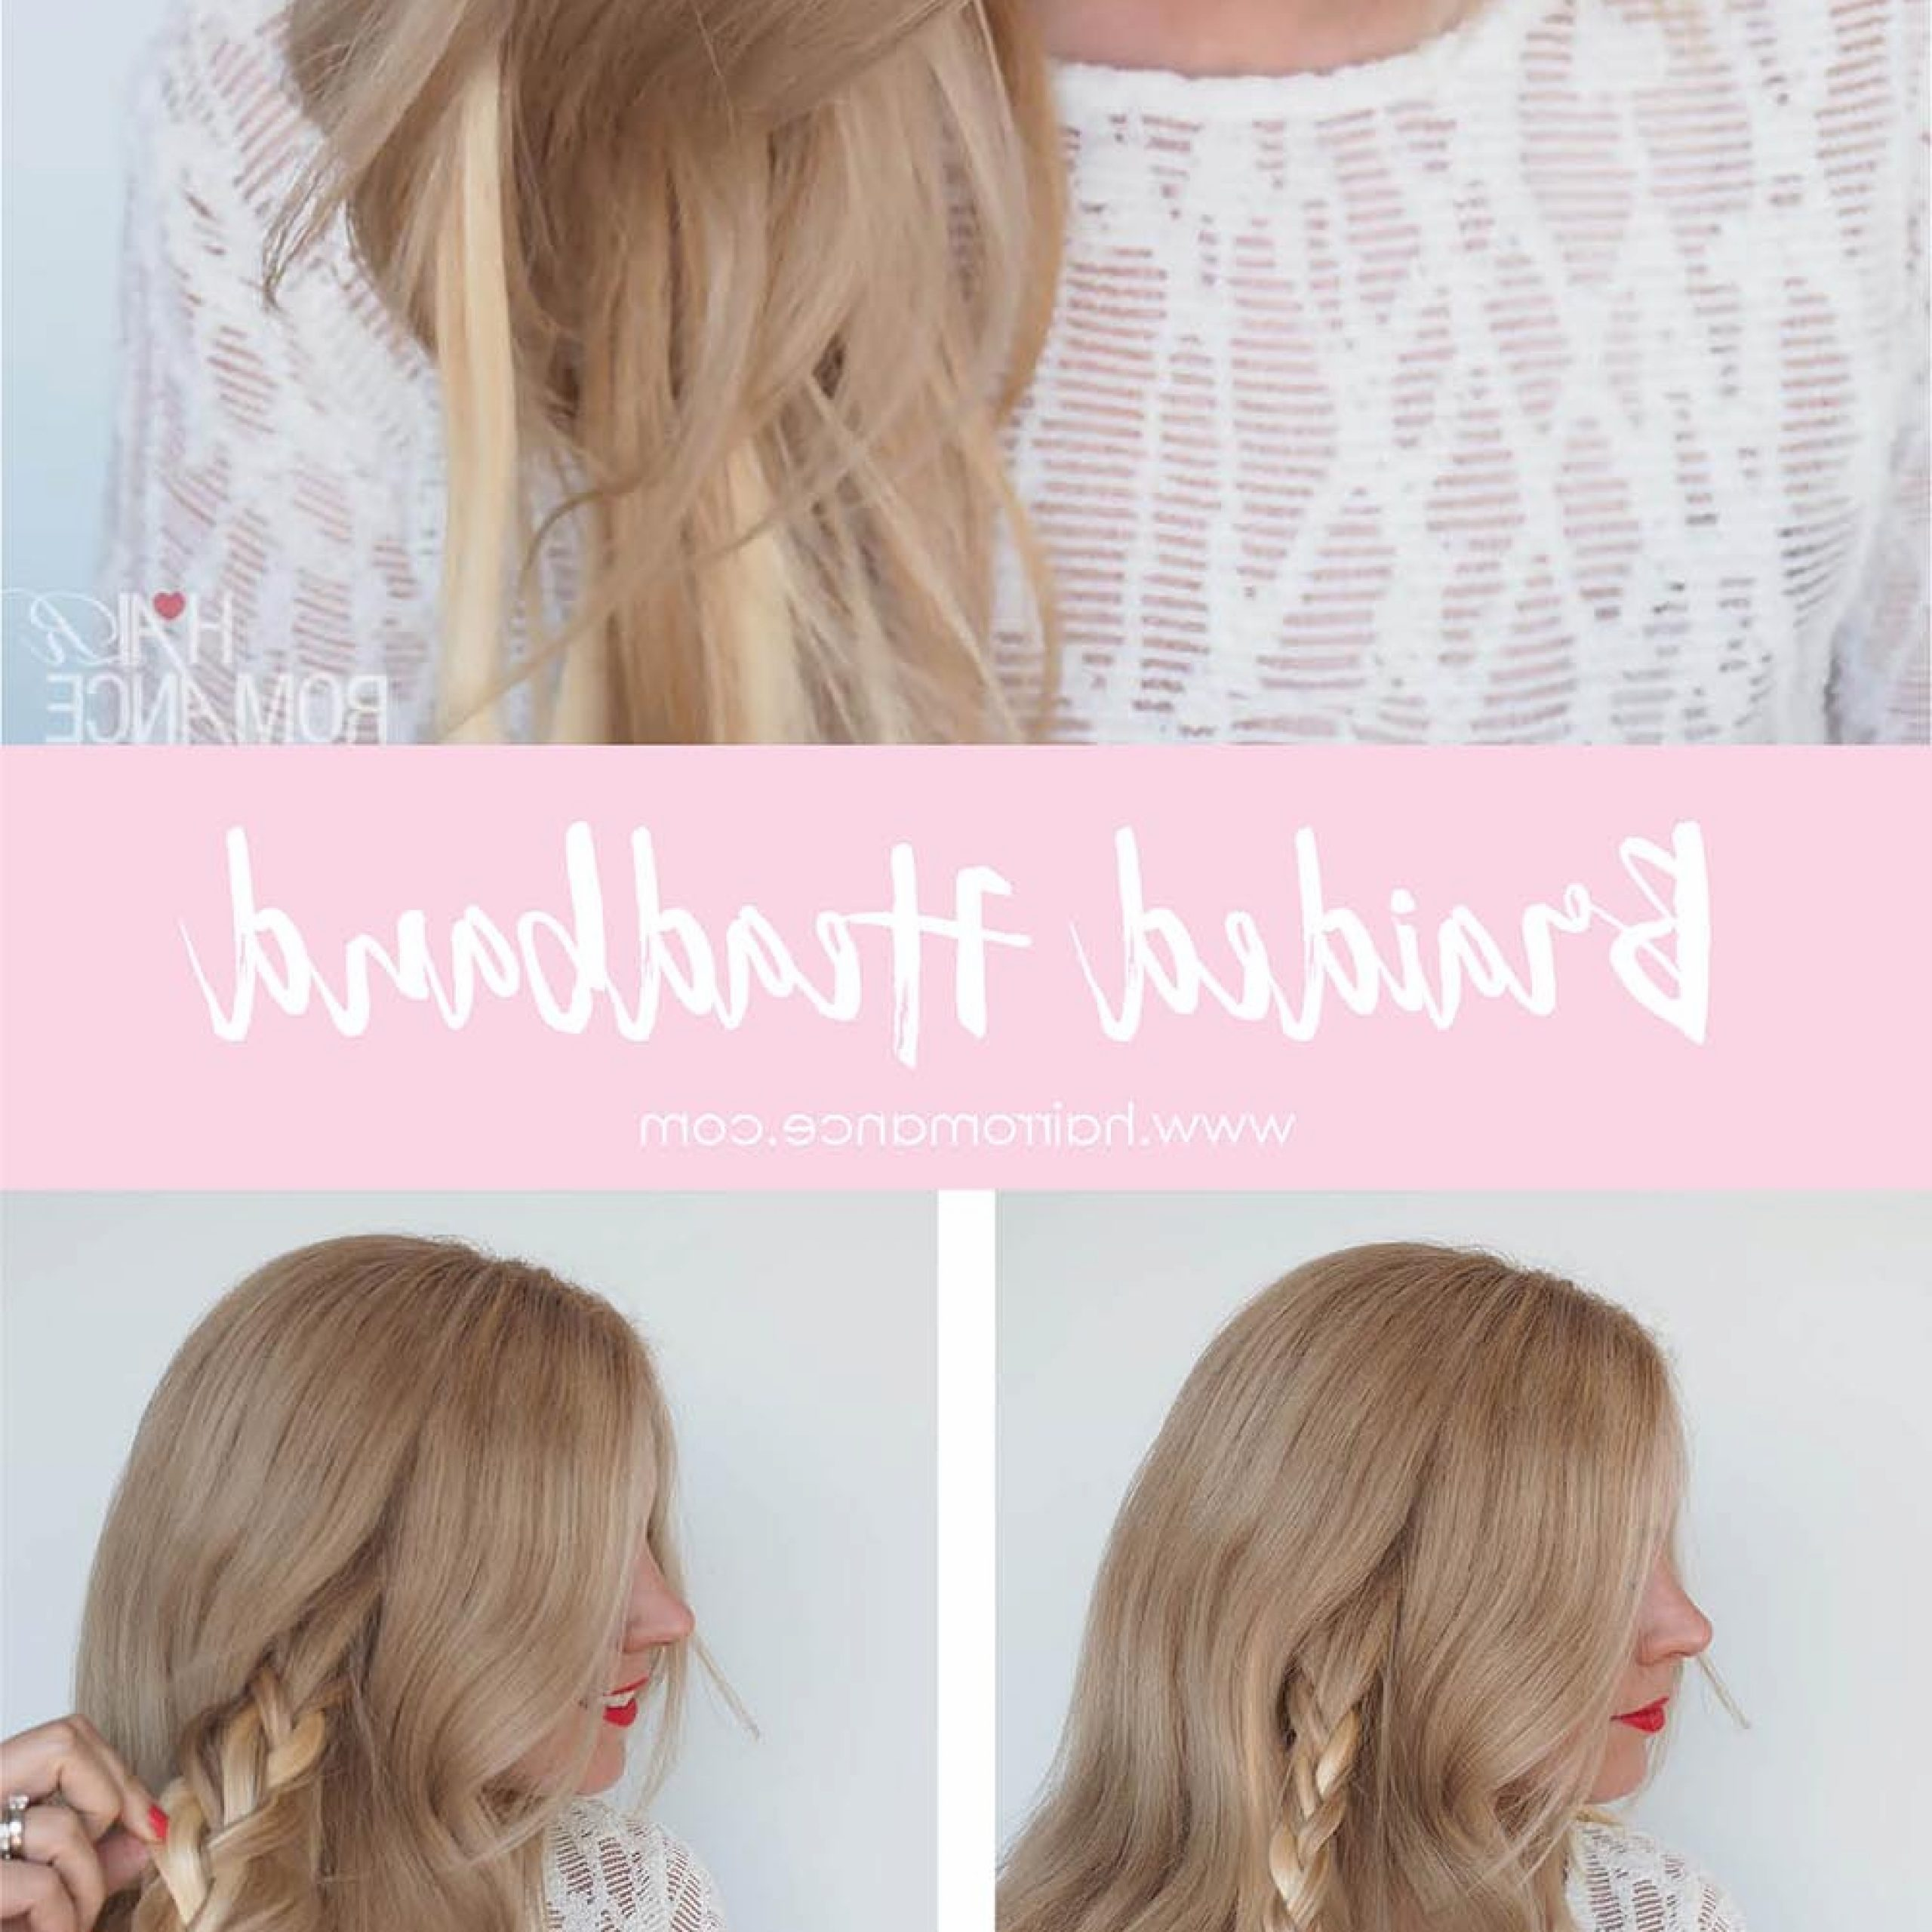 Braided Headband Hairstyle Tutorial – Hair Romance Pertaining To 2020 Full Headband Braid Hairstyles (View 4 of 20)